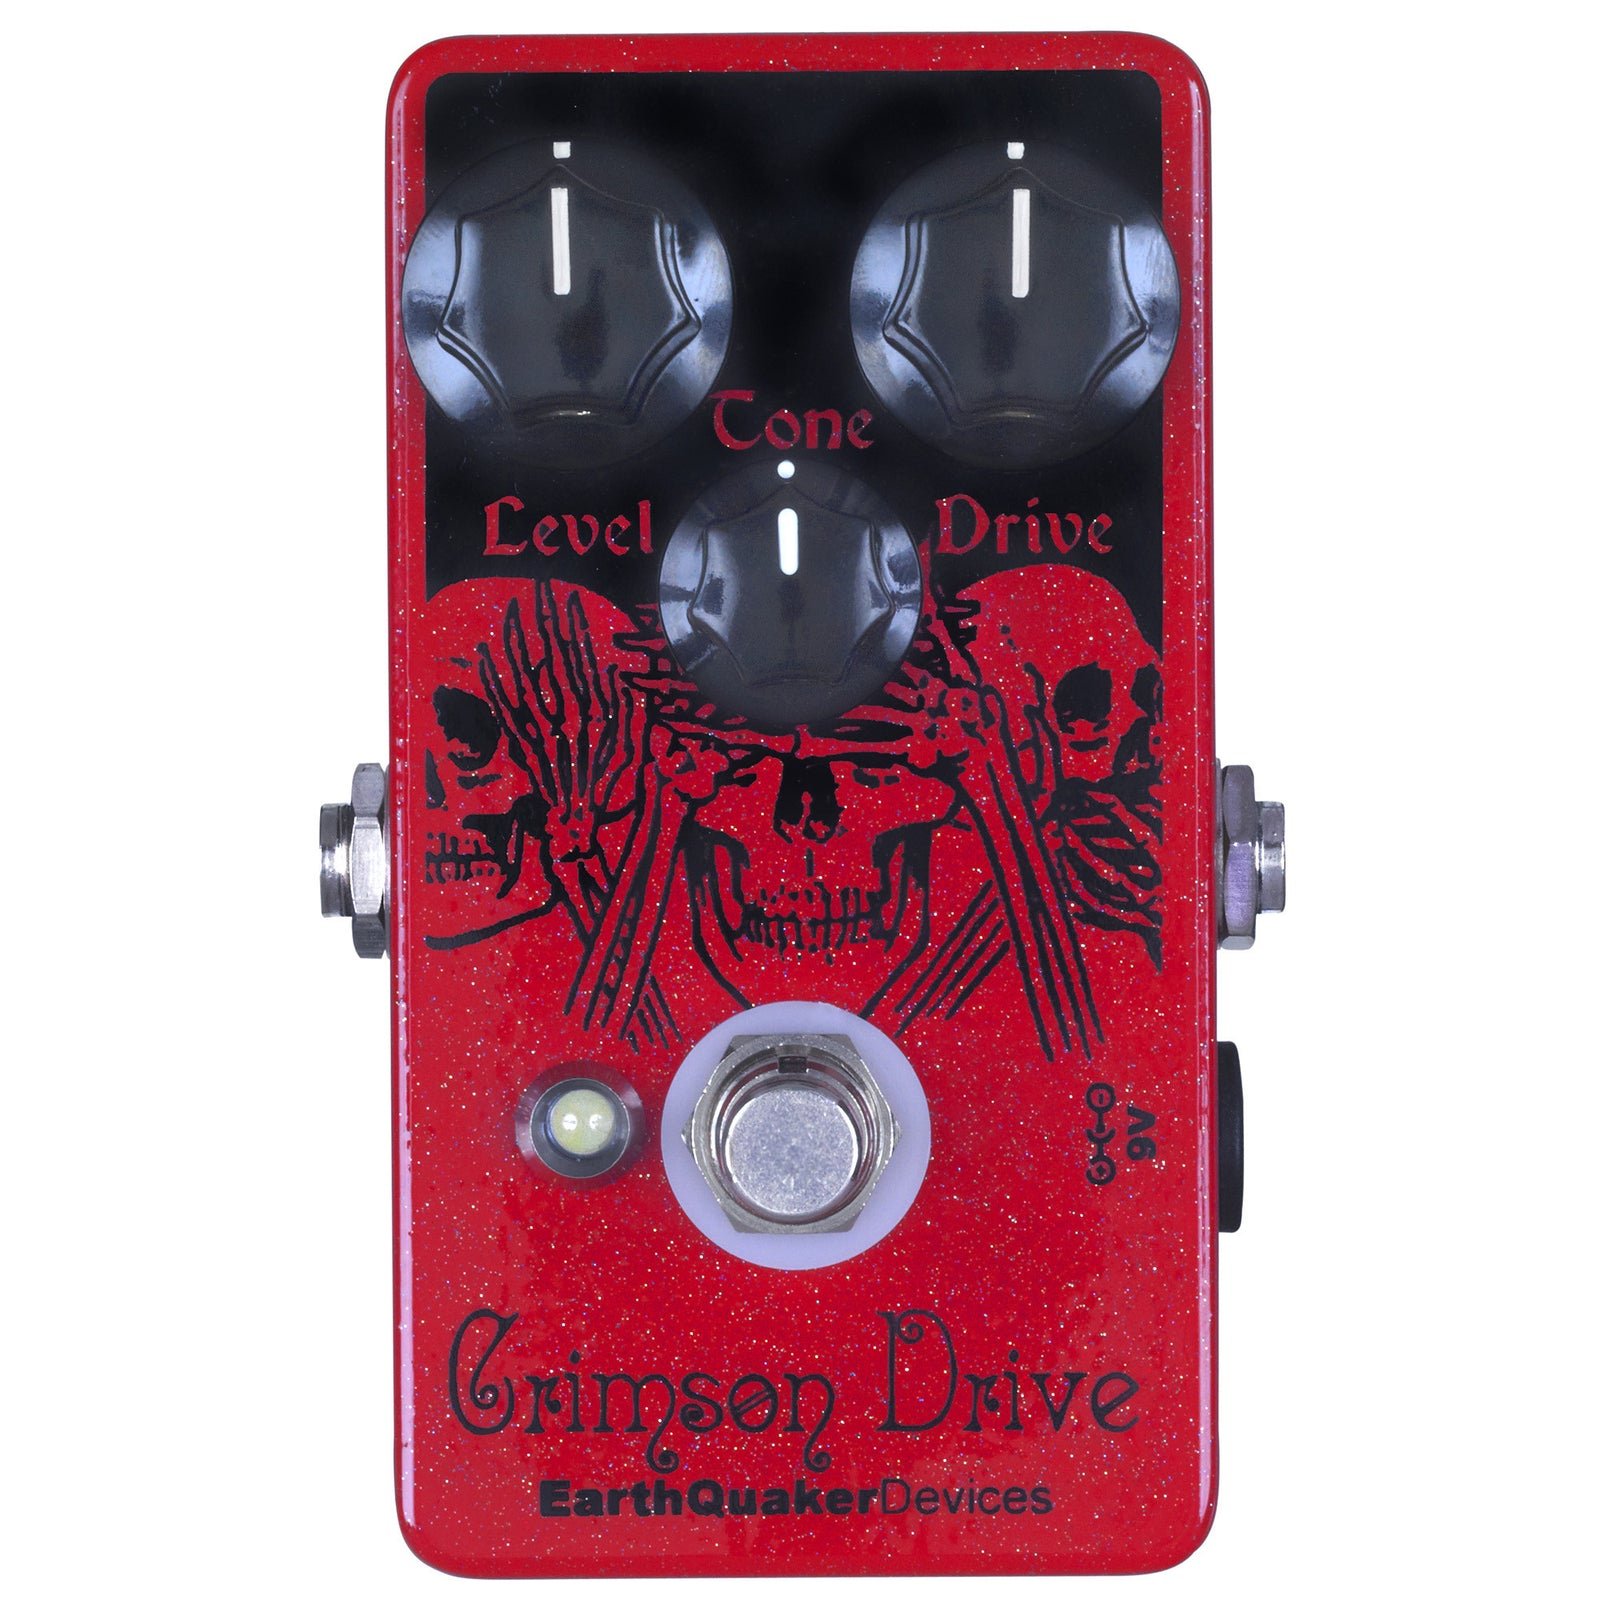 Earthquaker Crimson Drive Germanium Overdrive